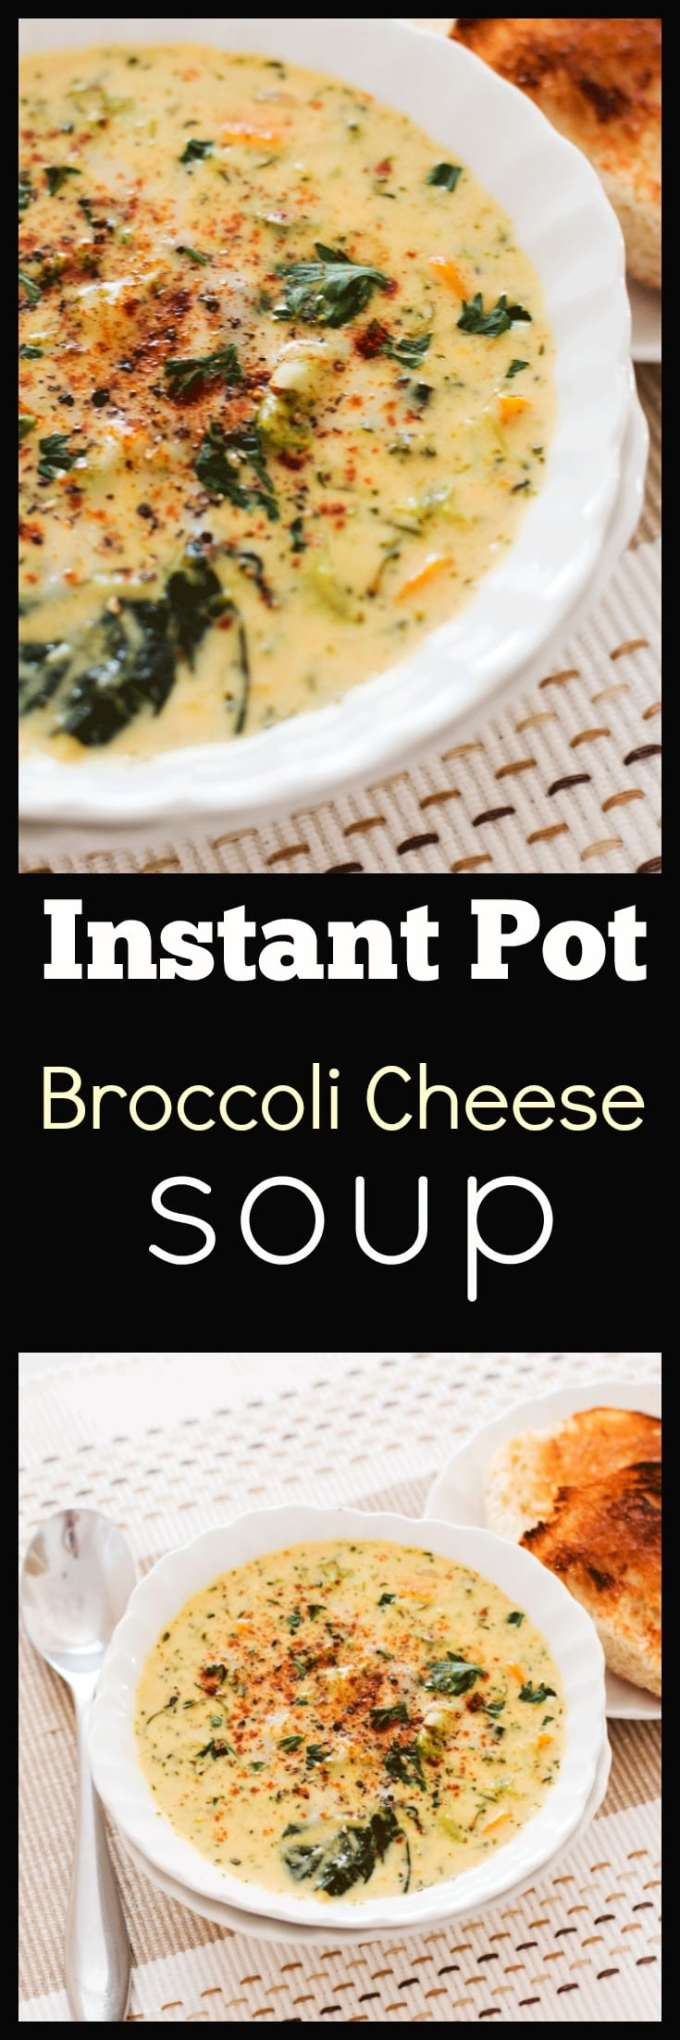 This easy Instant Pot Broccoli Cheese Soup is loaded with veggies, SUPER CHEESY and needs just a handful of ingredients you will already have on hand. Ready in only 20 minutes it makes the perfect midweek bowl of comfort.